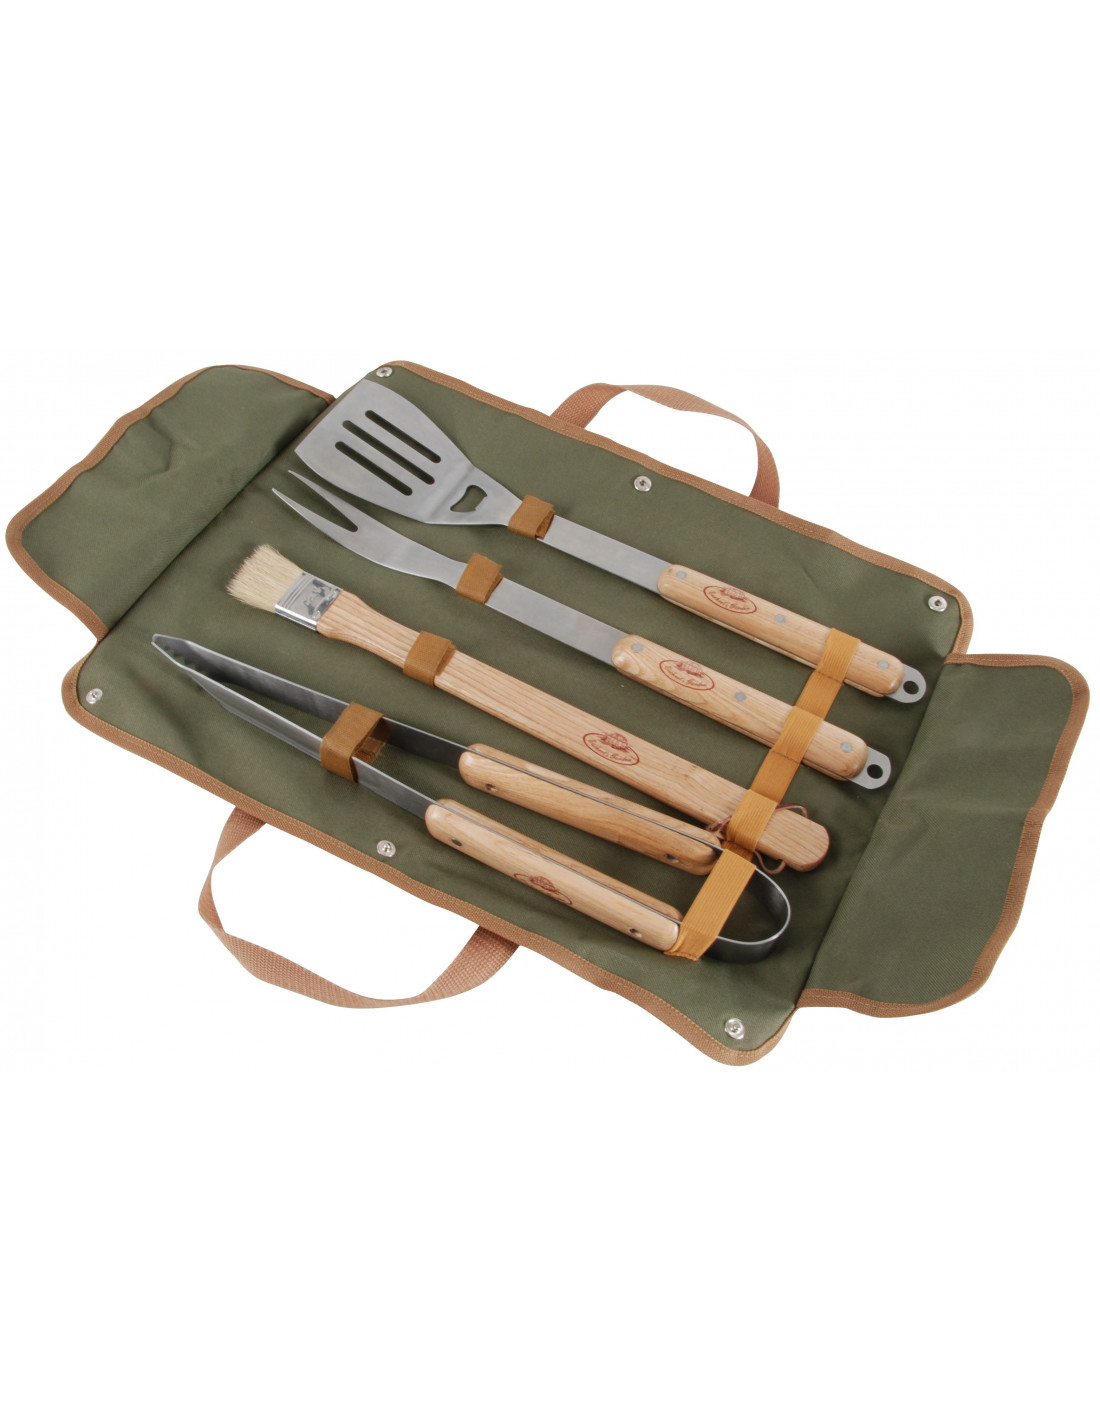 Set d'ustensiles Barbecue en bois